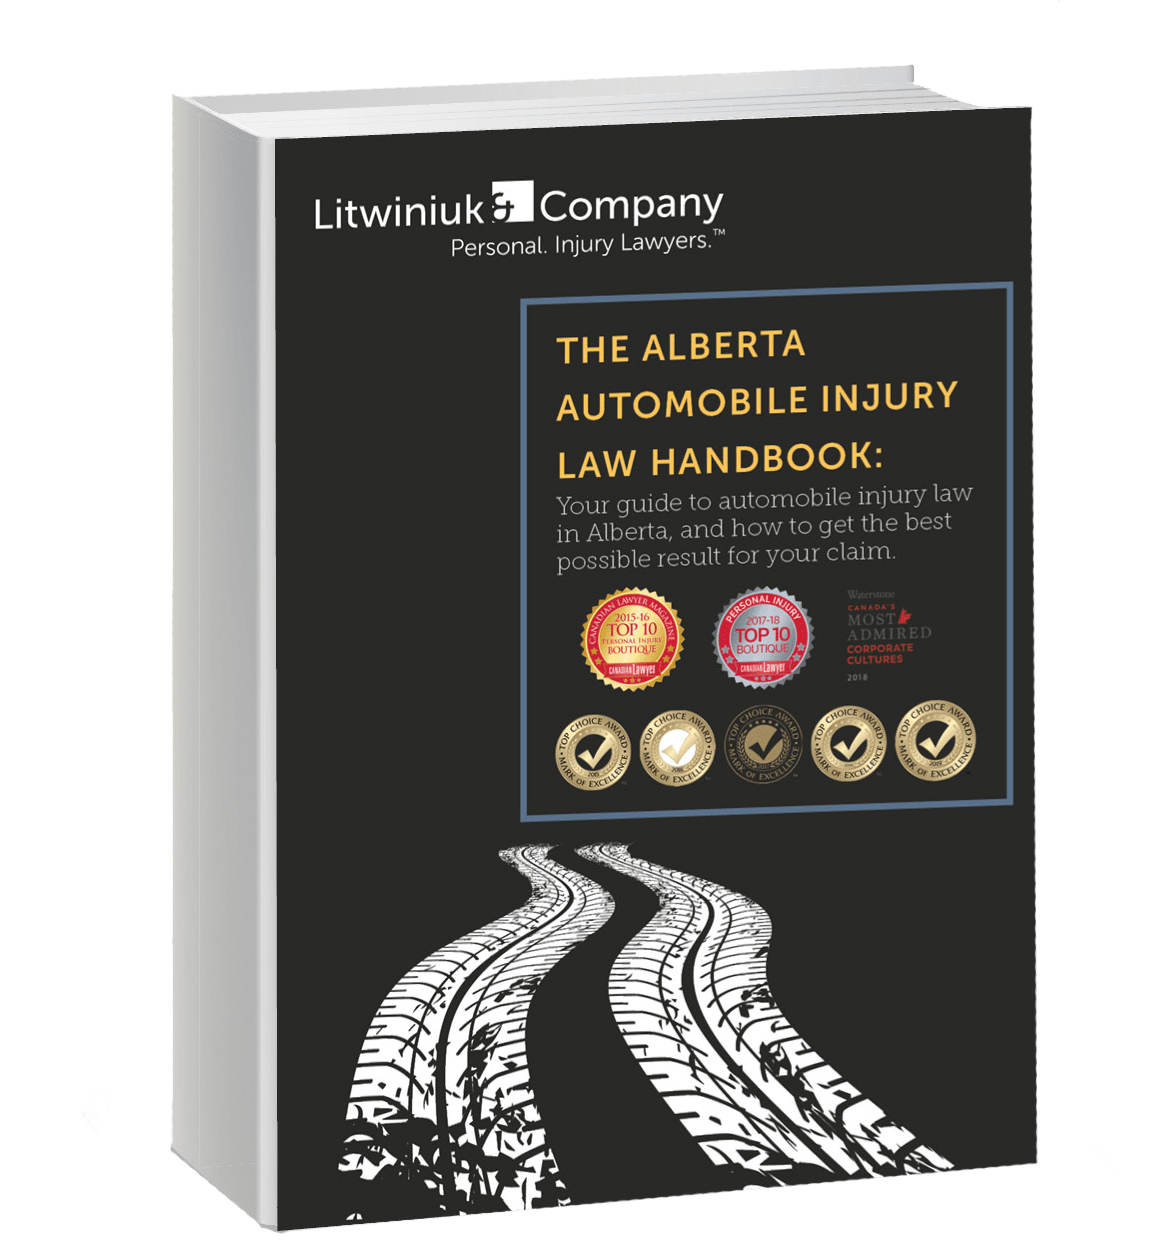 Top Choice Injury Law Firm 2019 Archives – Litwiniuk